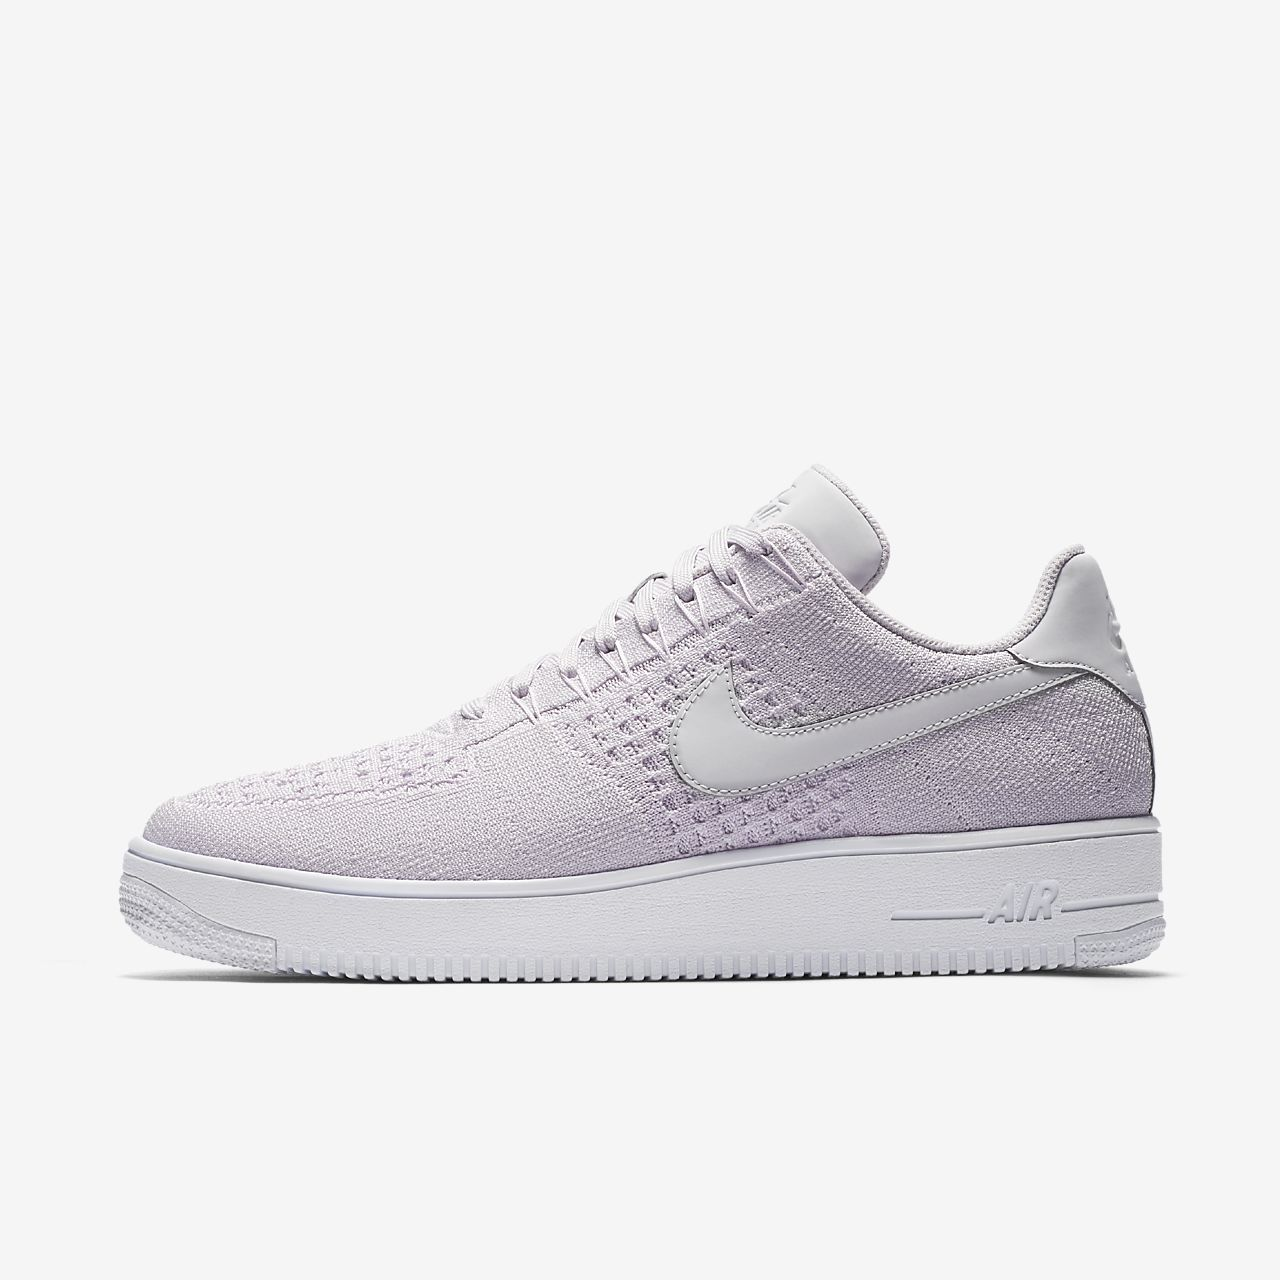 nike scarpe uomo 2018 air force